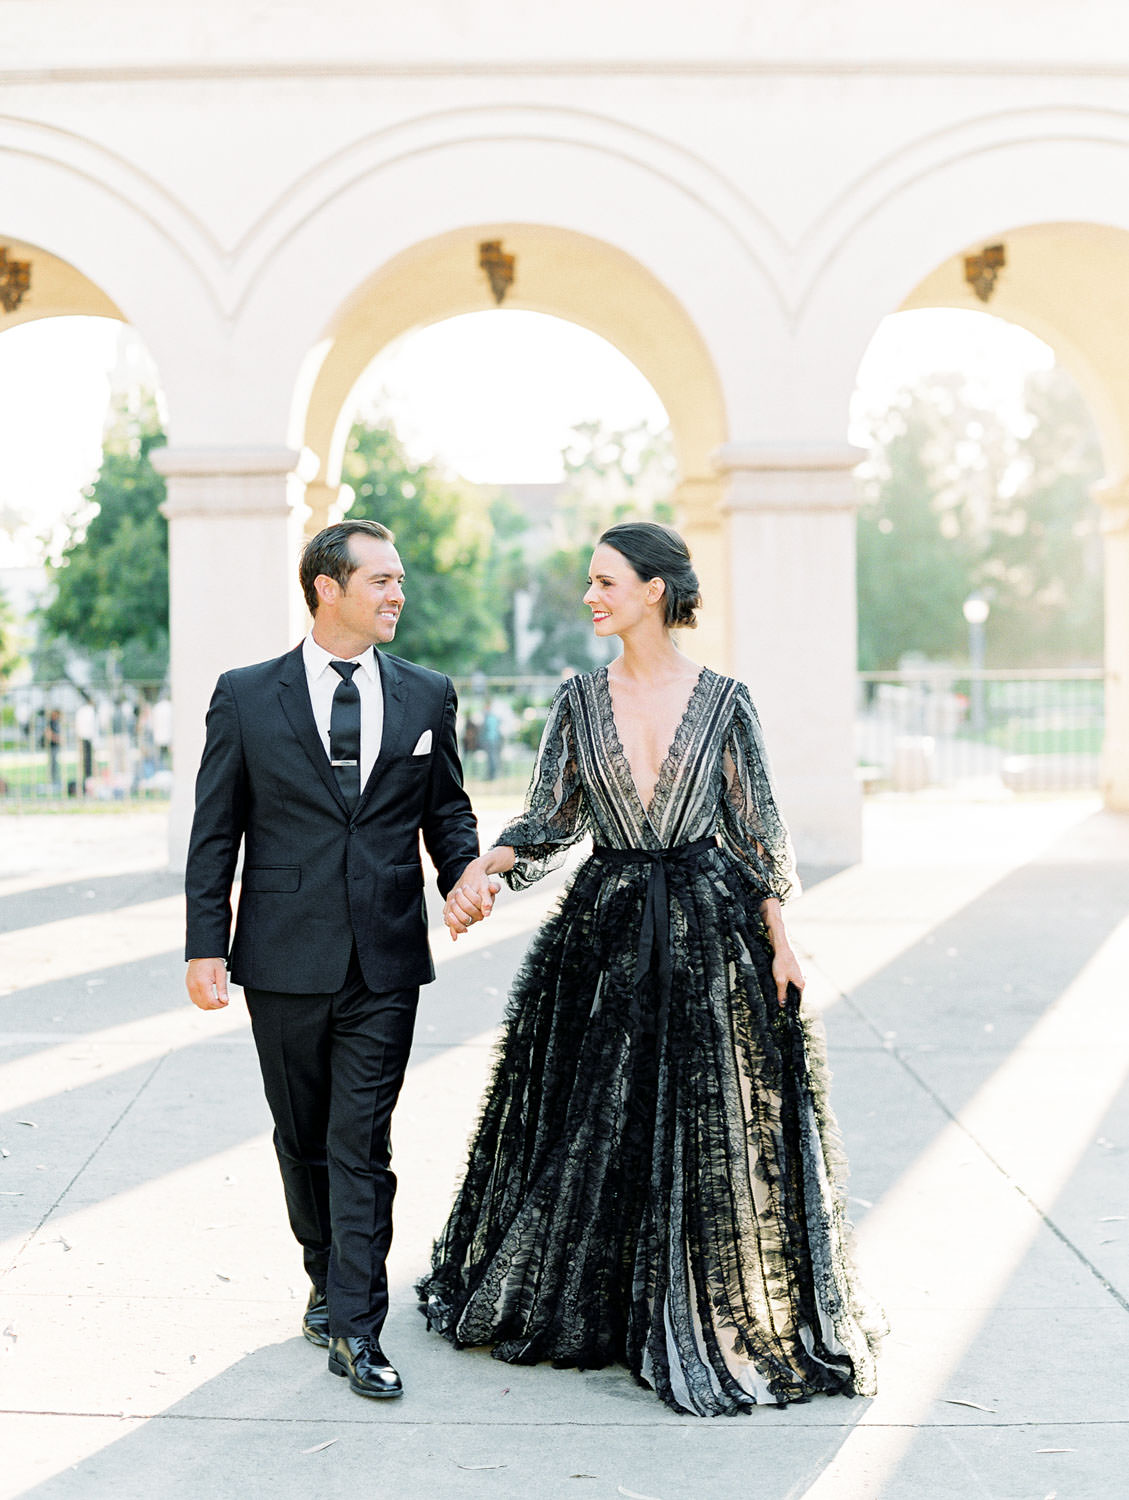 Bride in a black long sleeve lace Marchesa couture gown. Groom in a black suit and tie. Couple walking together with dreamy lighting. San Diego Anniversary Photos in Balboa Park on film by Cavin Elizabeth Photography